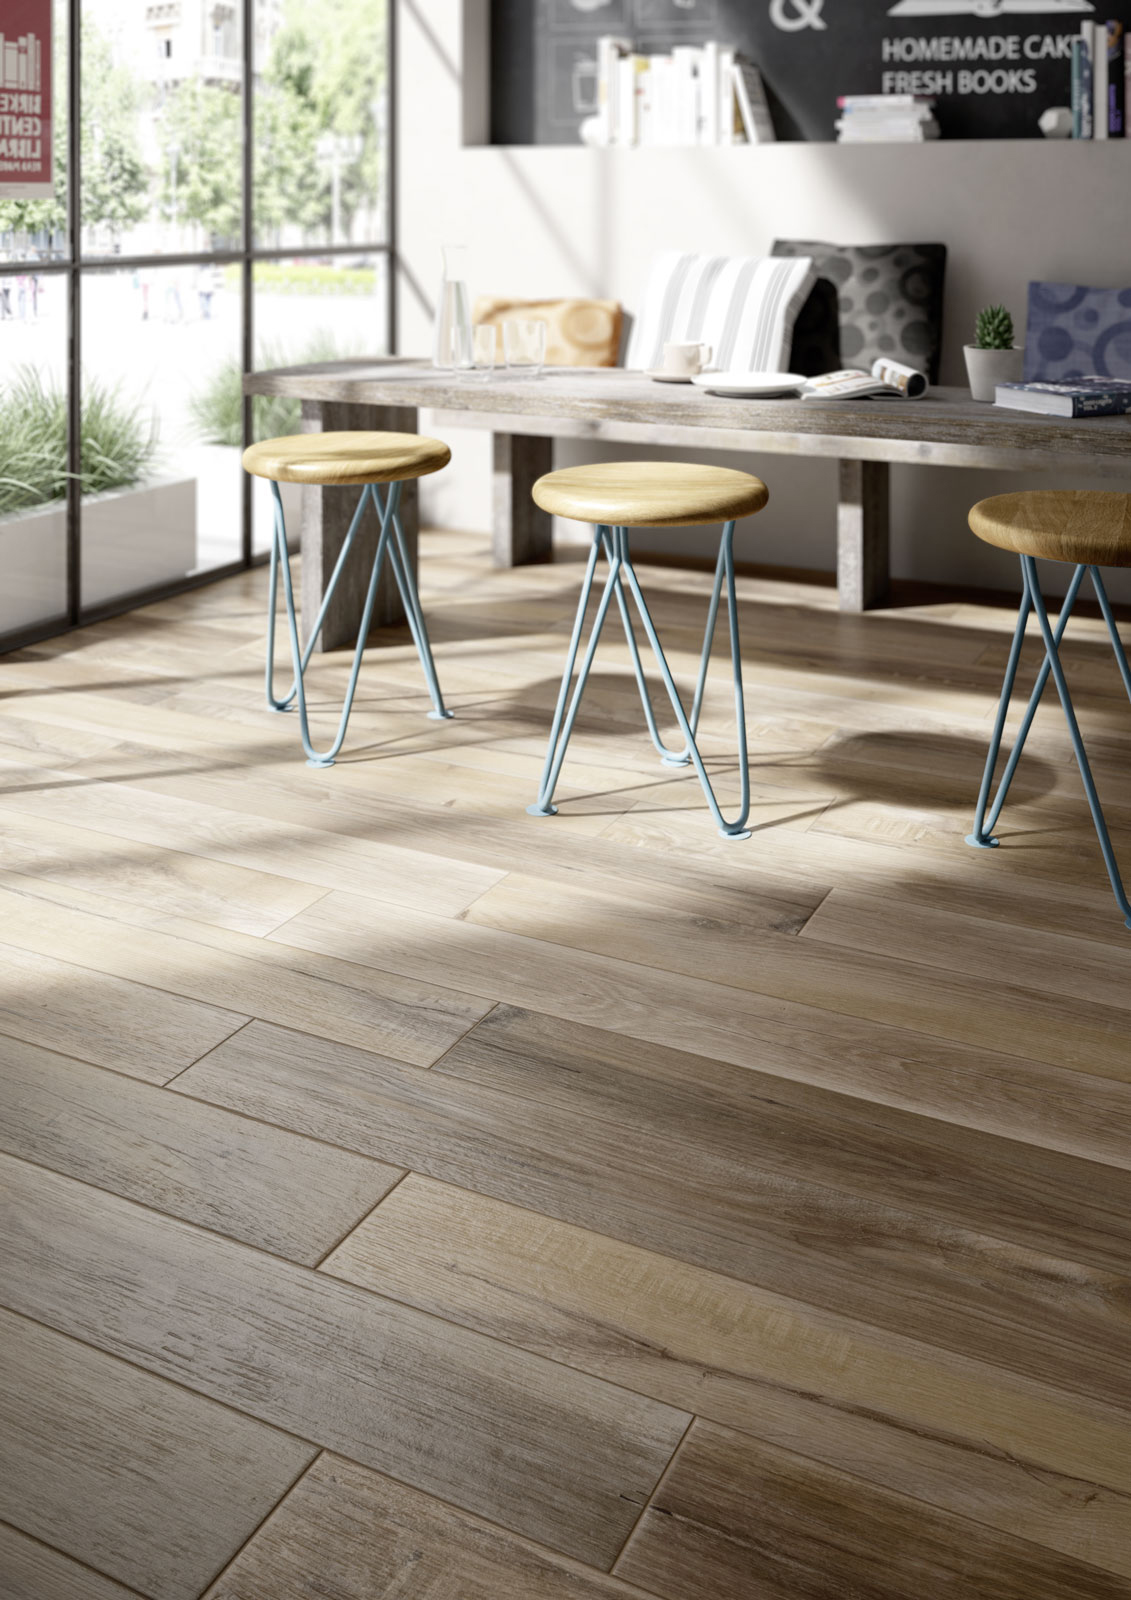 Wood effect and hardwood porcelain stoneware: discover all the effects -  Marazzi 6964 - Wood Effect And Hardwood Porcelain Stoneware Marazzi